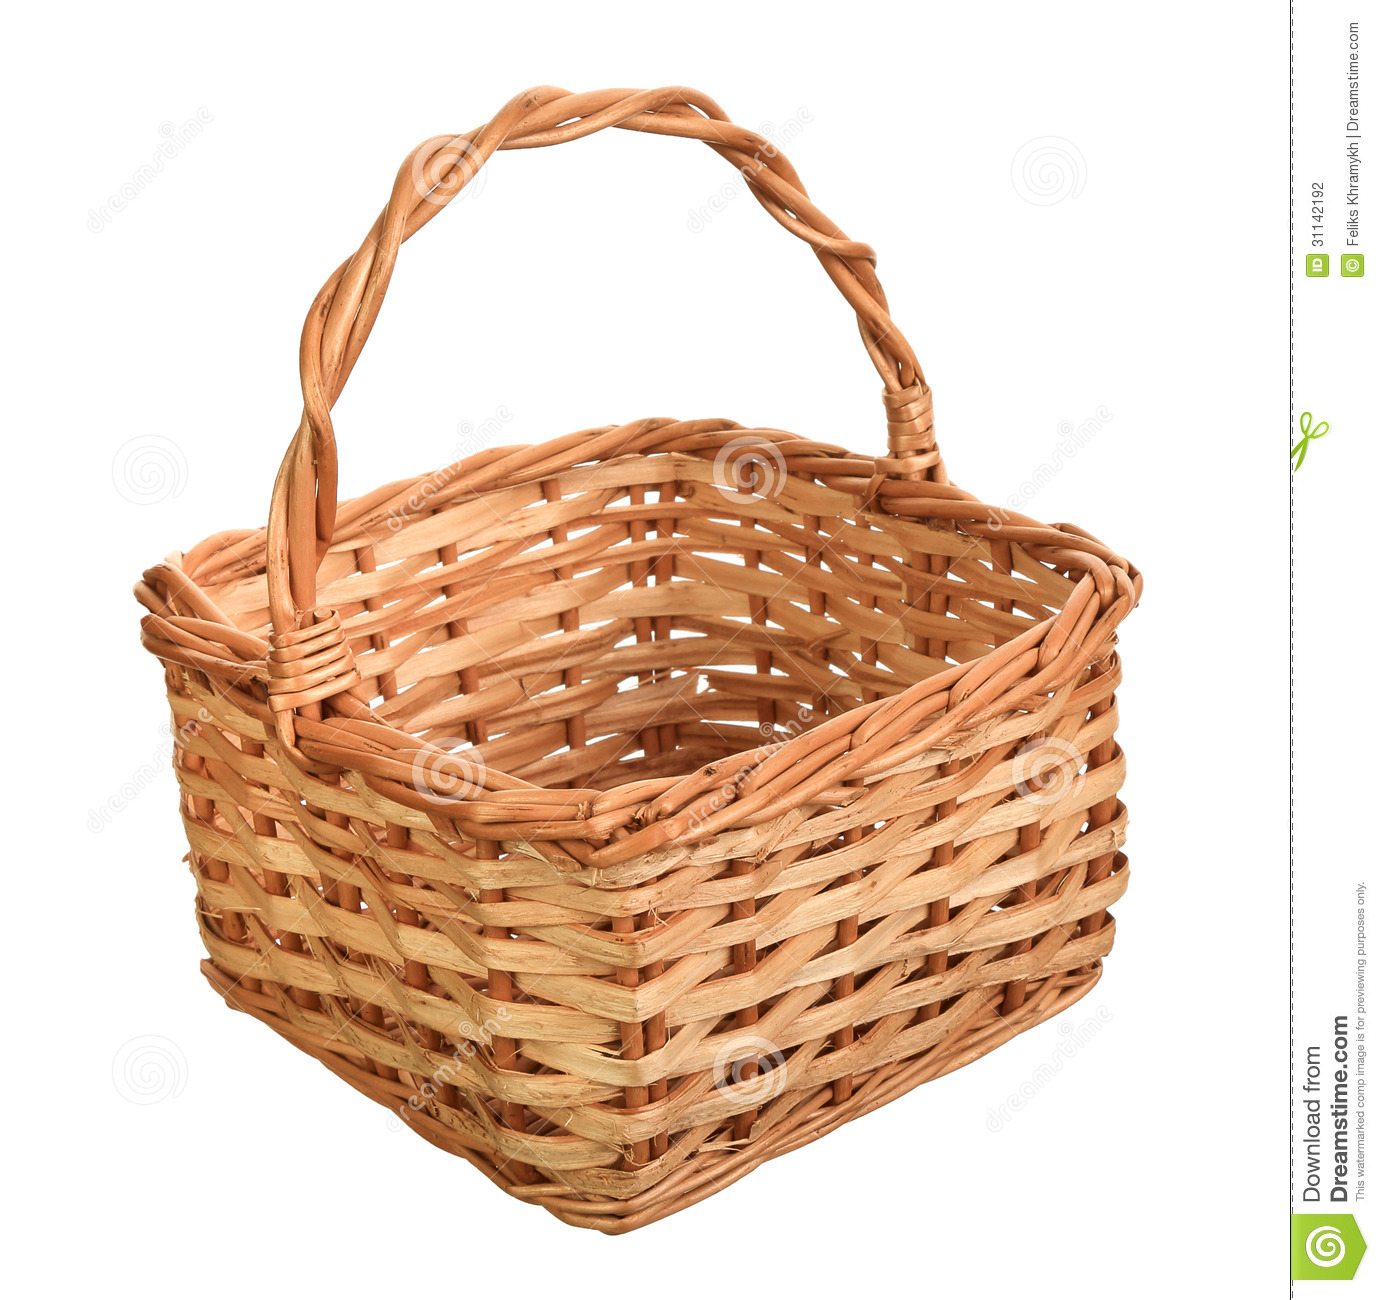 A wicker basket with handle.